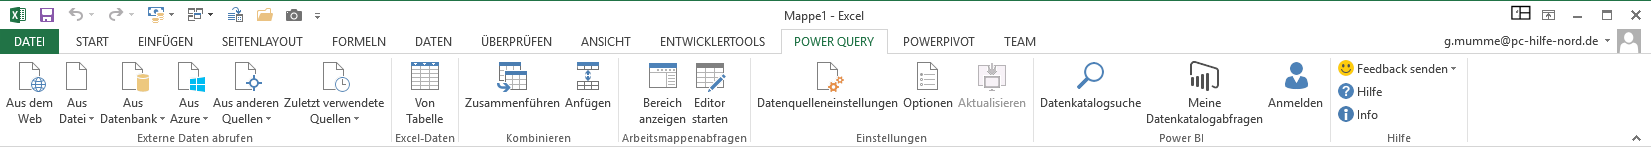 Das Menü-Band des Power Query